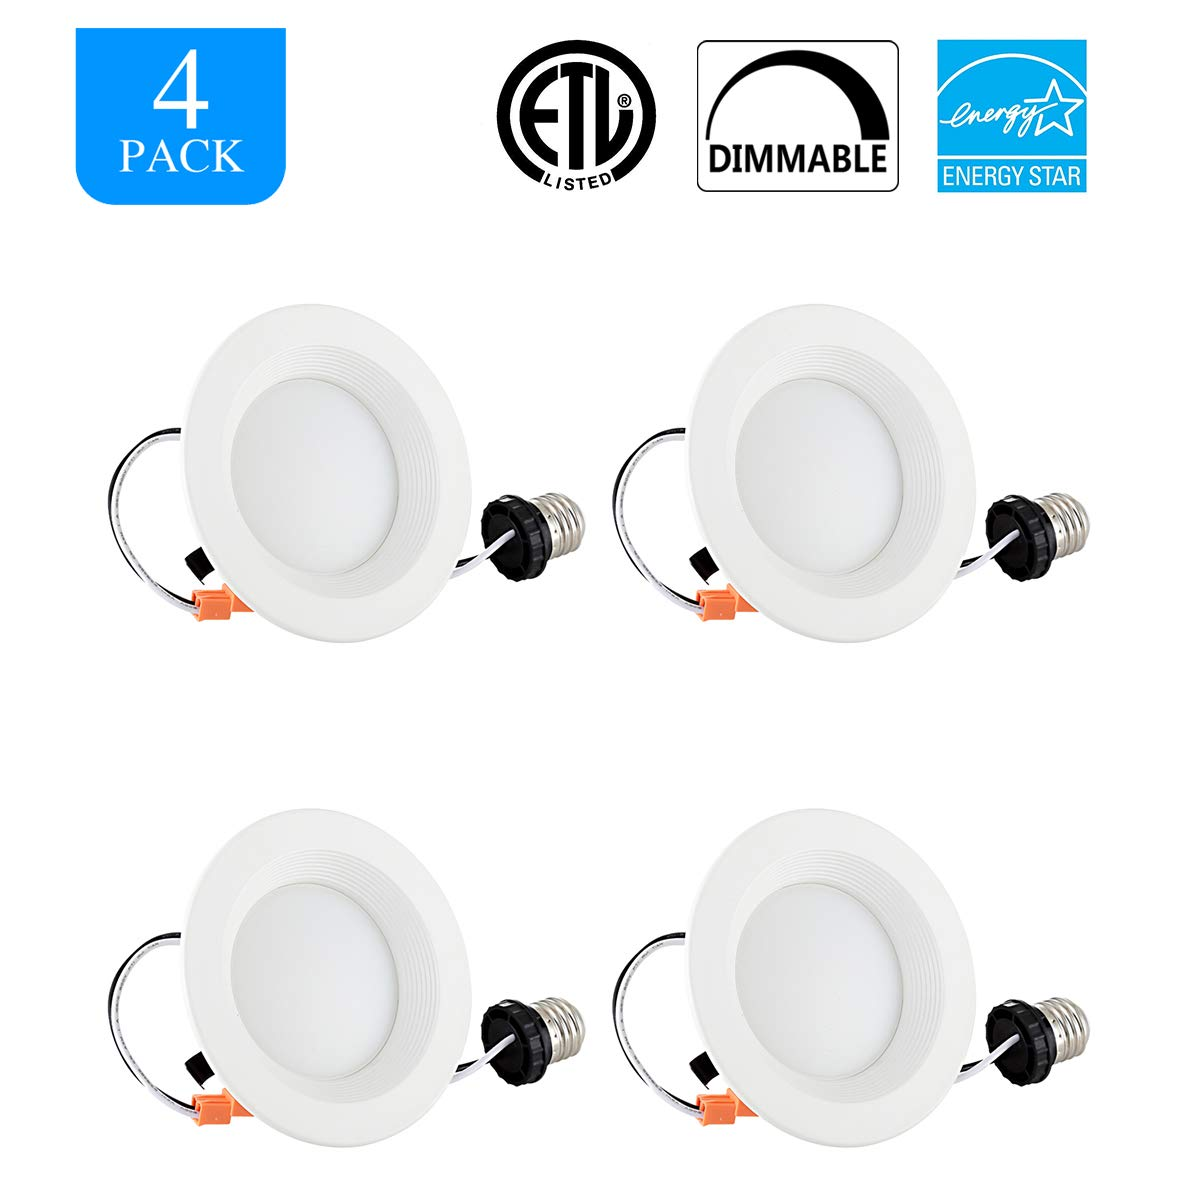 HOMIFORCE LED Downlight 2700K - 4 Packs 4 Inch 8W Dimmable Ceiling Lights - 65W Replacement Baffle Recessed Retrofit Kit Dimmable LED Light - Warm White